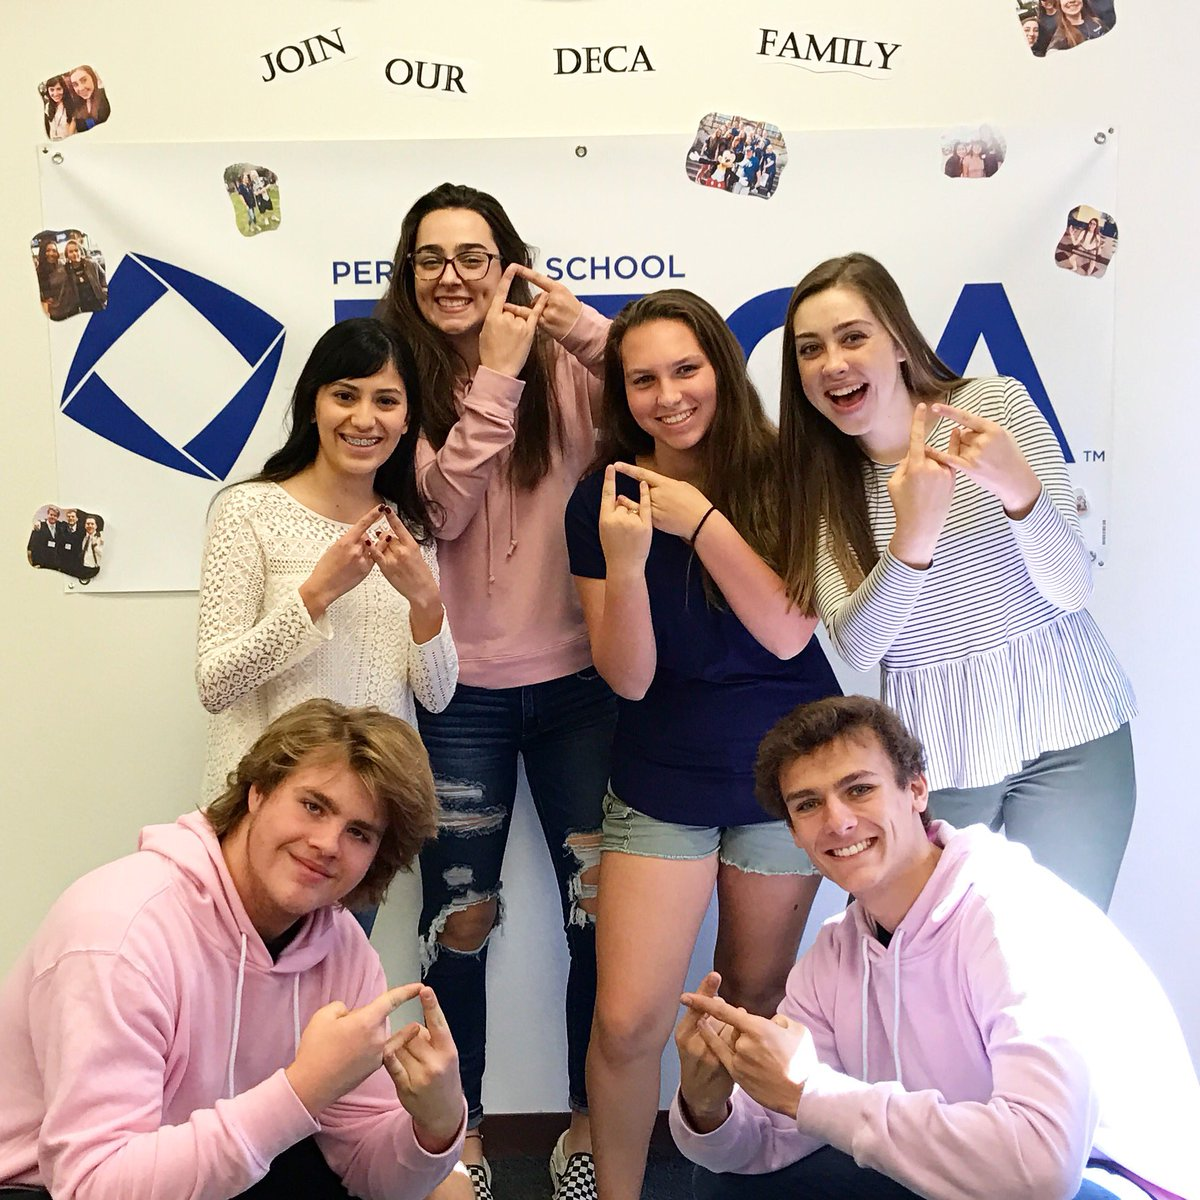 Perrydeca on twitter meet the sbe class haley has your favorite perrydeca on twitter meet the sbe class haley has your favorite candy on hand maggieb17 and alyssa give honest sisterly advice m4hsunfo